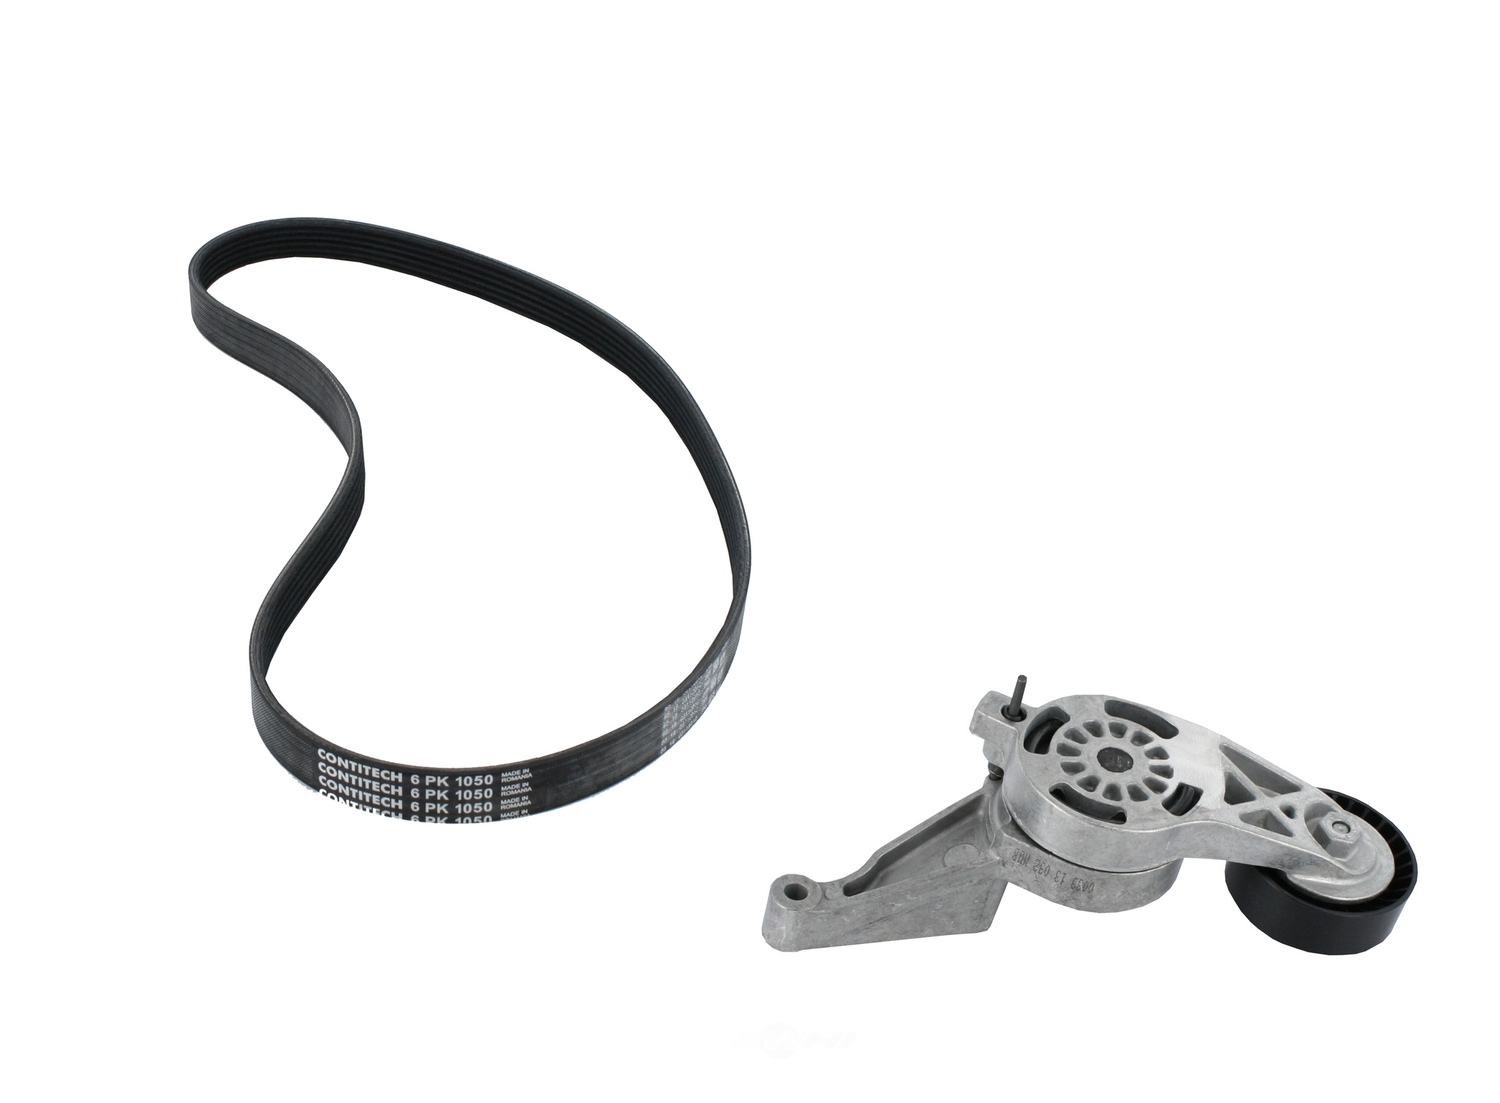 CRP/CONTITECH (METRIC-IMPORT) - Accessory Drive Belt Kit - CPF ADK0032P